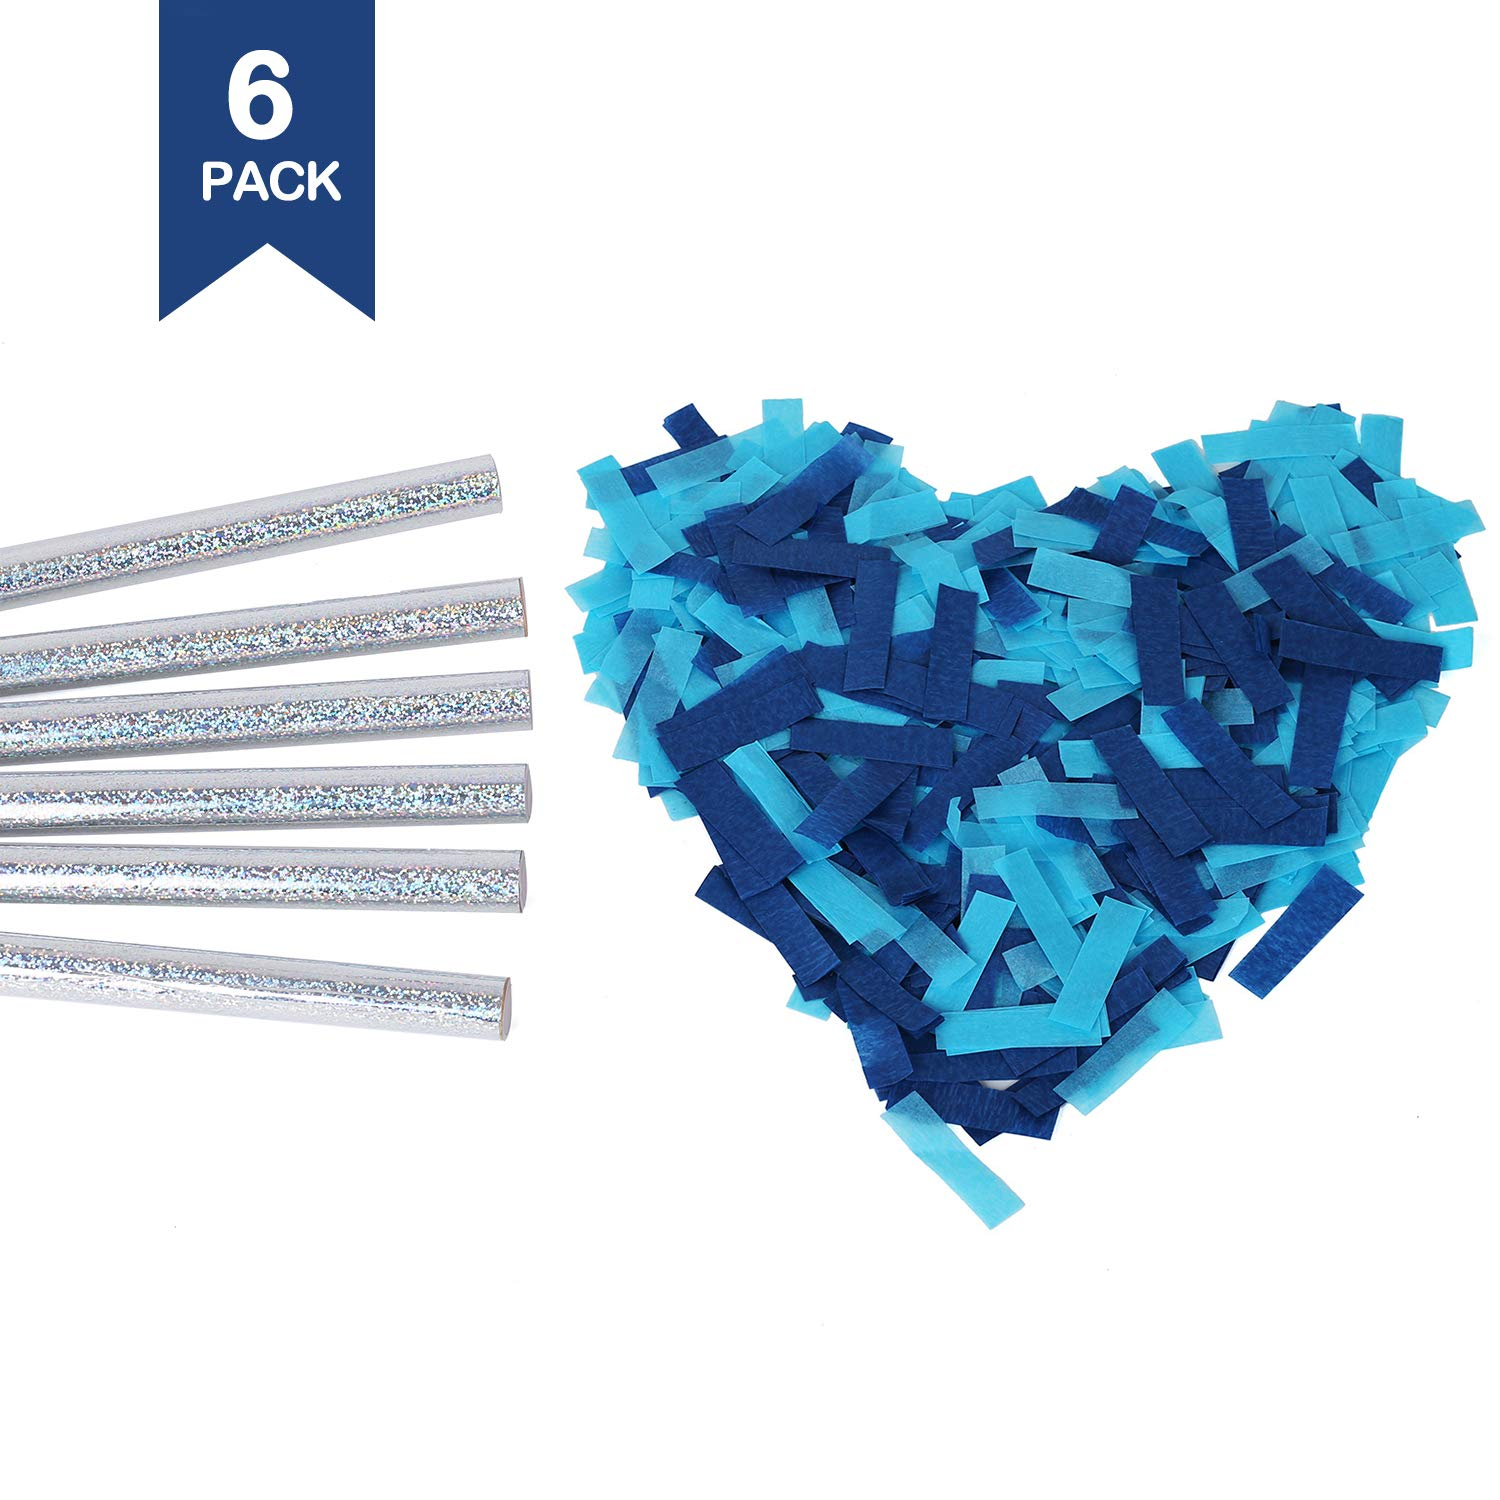 Battife Confetti Sticks 6Pack Blue Biodegradable Tissue Paper Confetti Flick Flutter Wands for Birthday Party Wedding - Blue 14inch